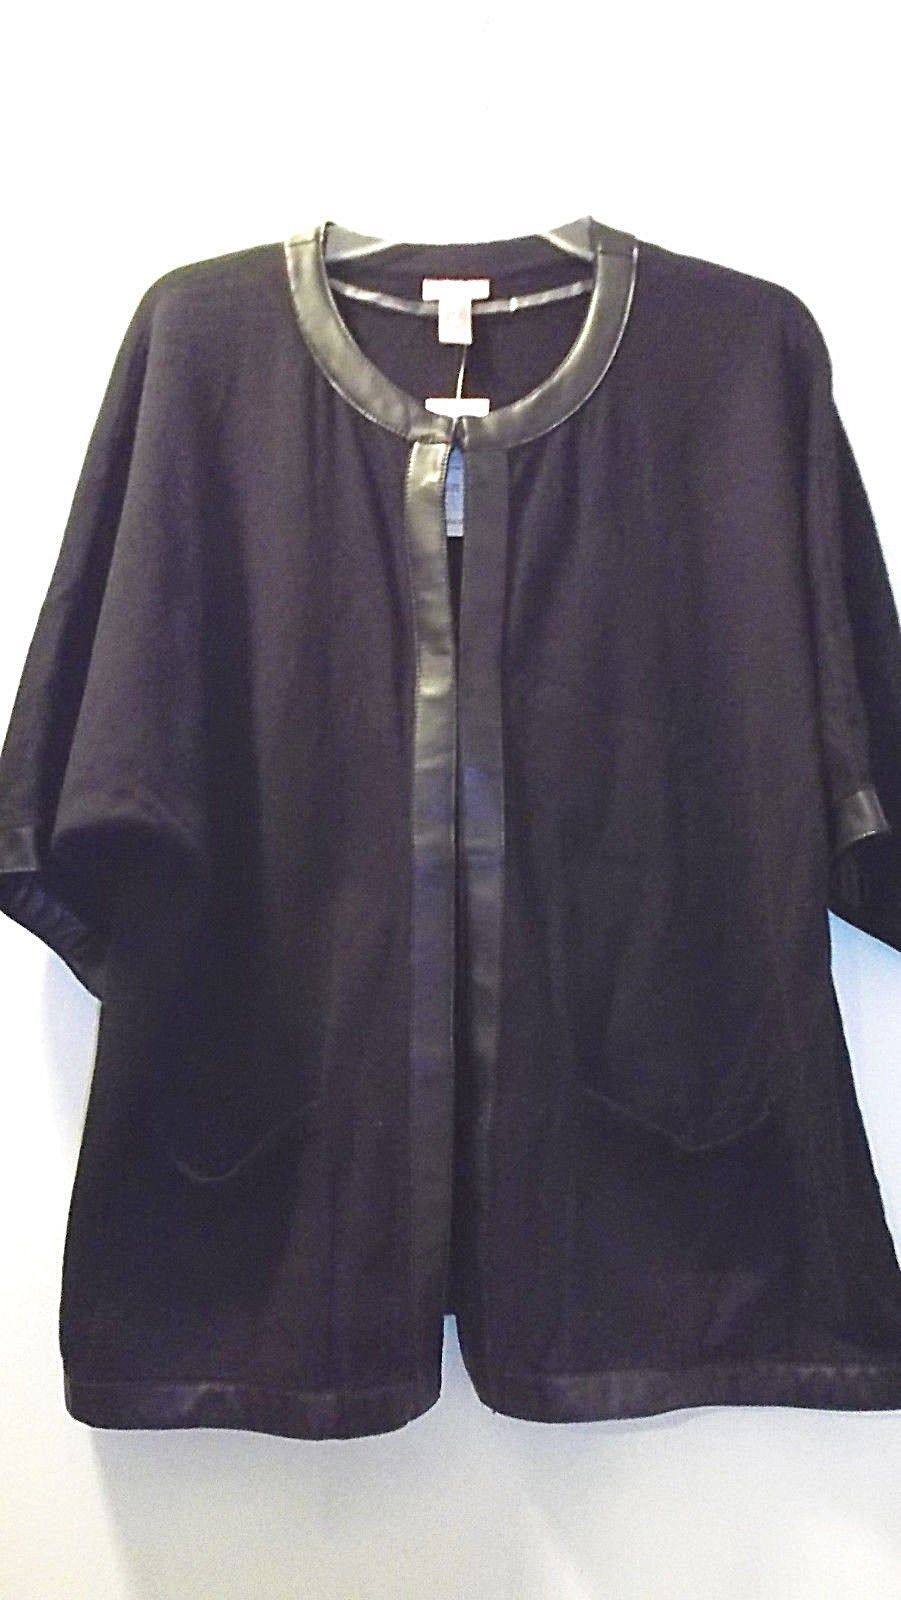 CHICO'S KELLEY ELBOW  BLACK CARDIGAN SWEATER NWT$64 - $20.00